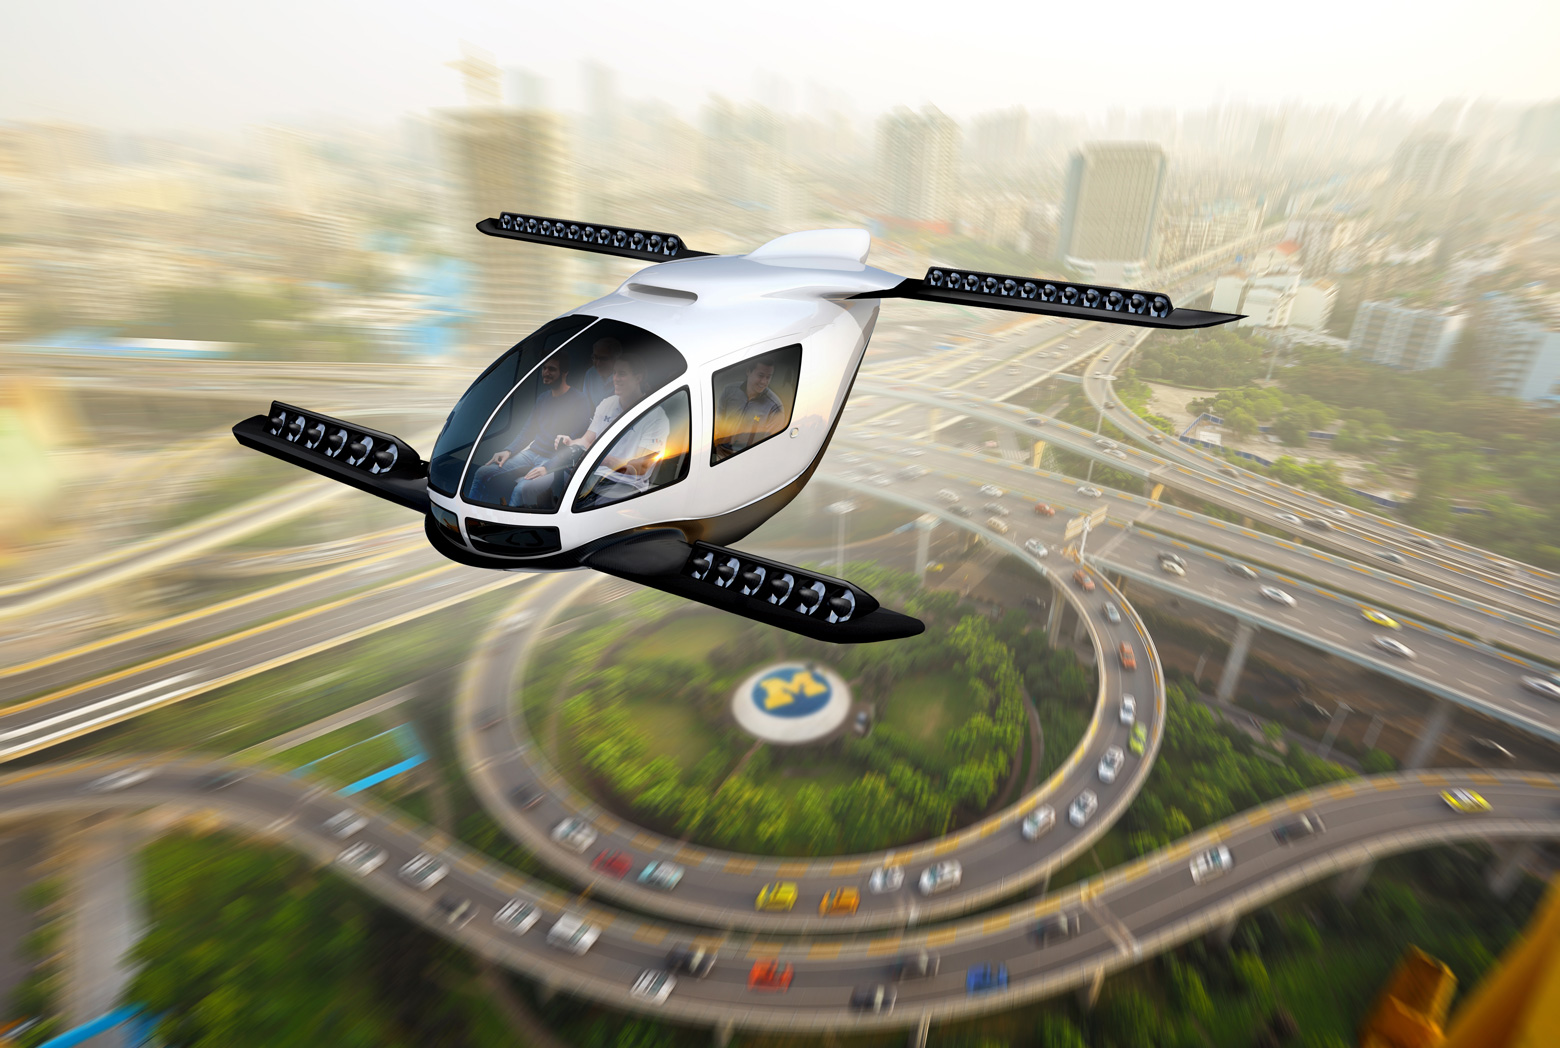 Artistic rendering of an electric vertical takeoff and landing taxi cruising through an urban center. Image credit: Dave Brenner/University of Michigan School for Environment and Sustainability.